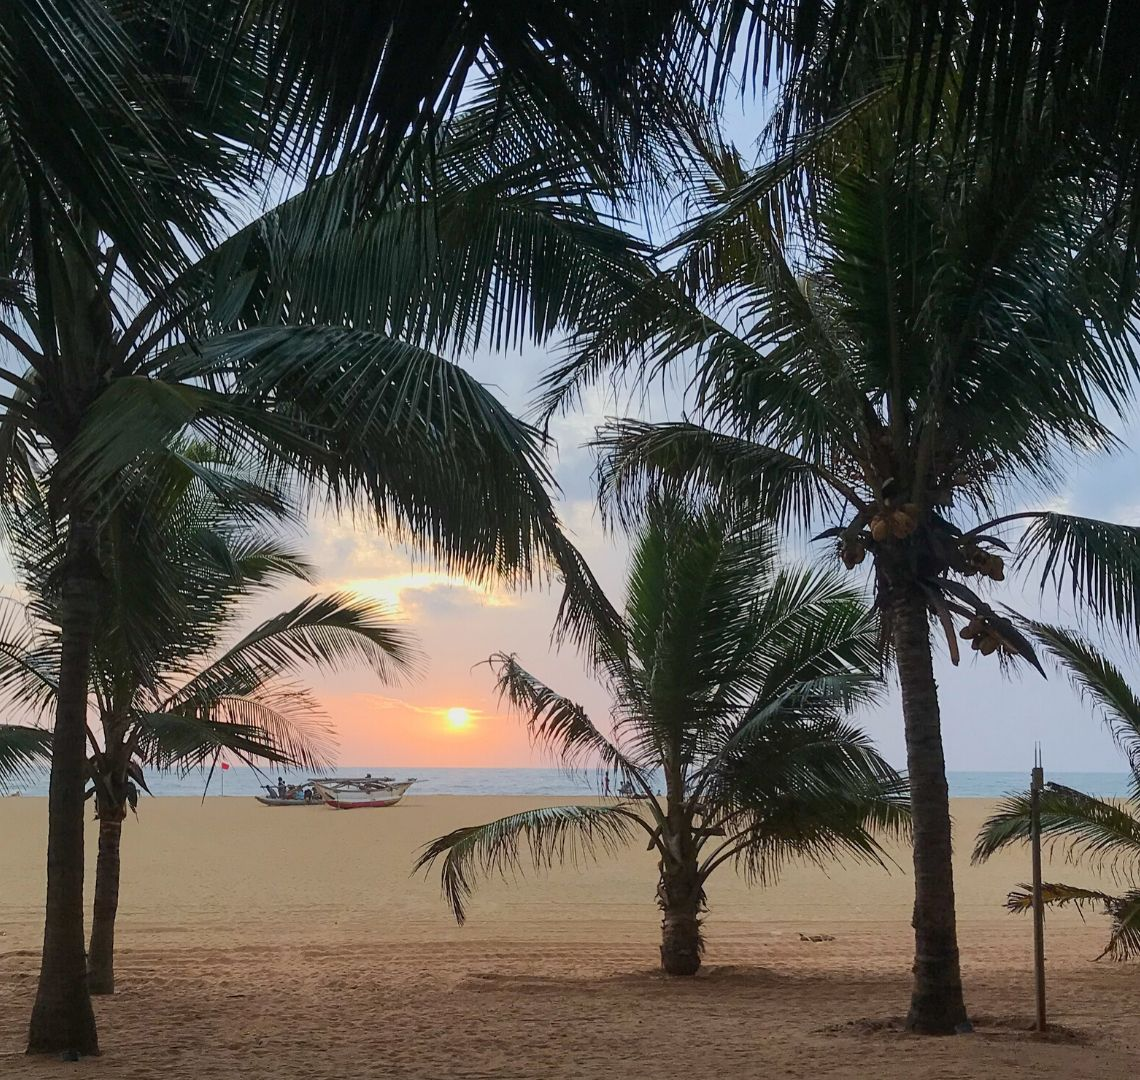 Palm trees on Negombo beach with a boat and a pastel pink sunset in the background